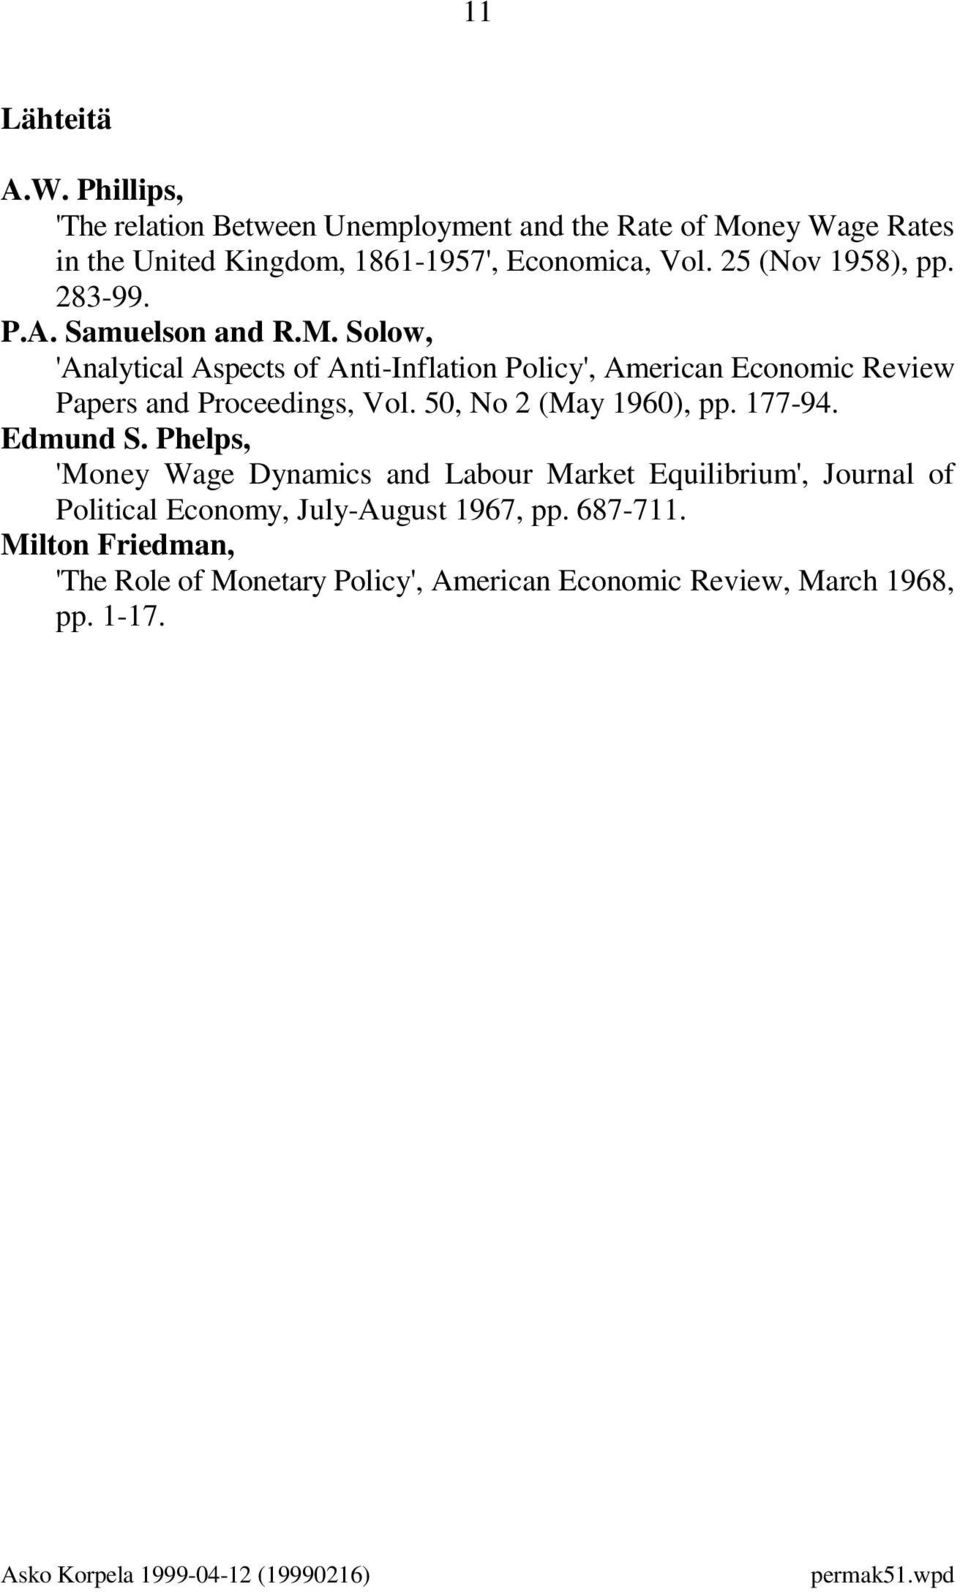 Solow, 'Analytical Aspects of Anti-Inflation Policy', American Economic Review Papers and Proceedings, Vol. 50, No 2 (May 1960), pp. 177-94. Edmund S.